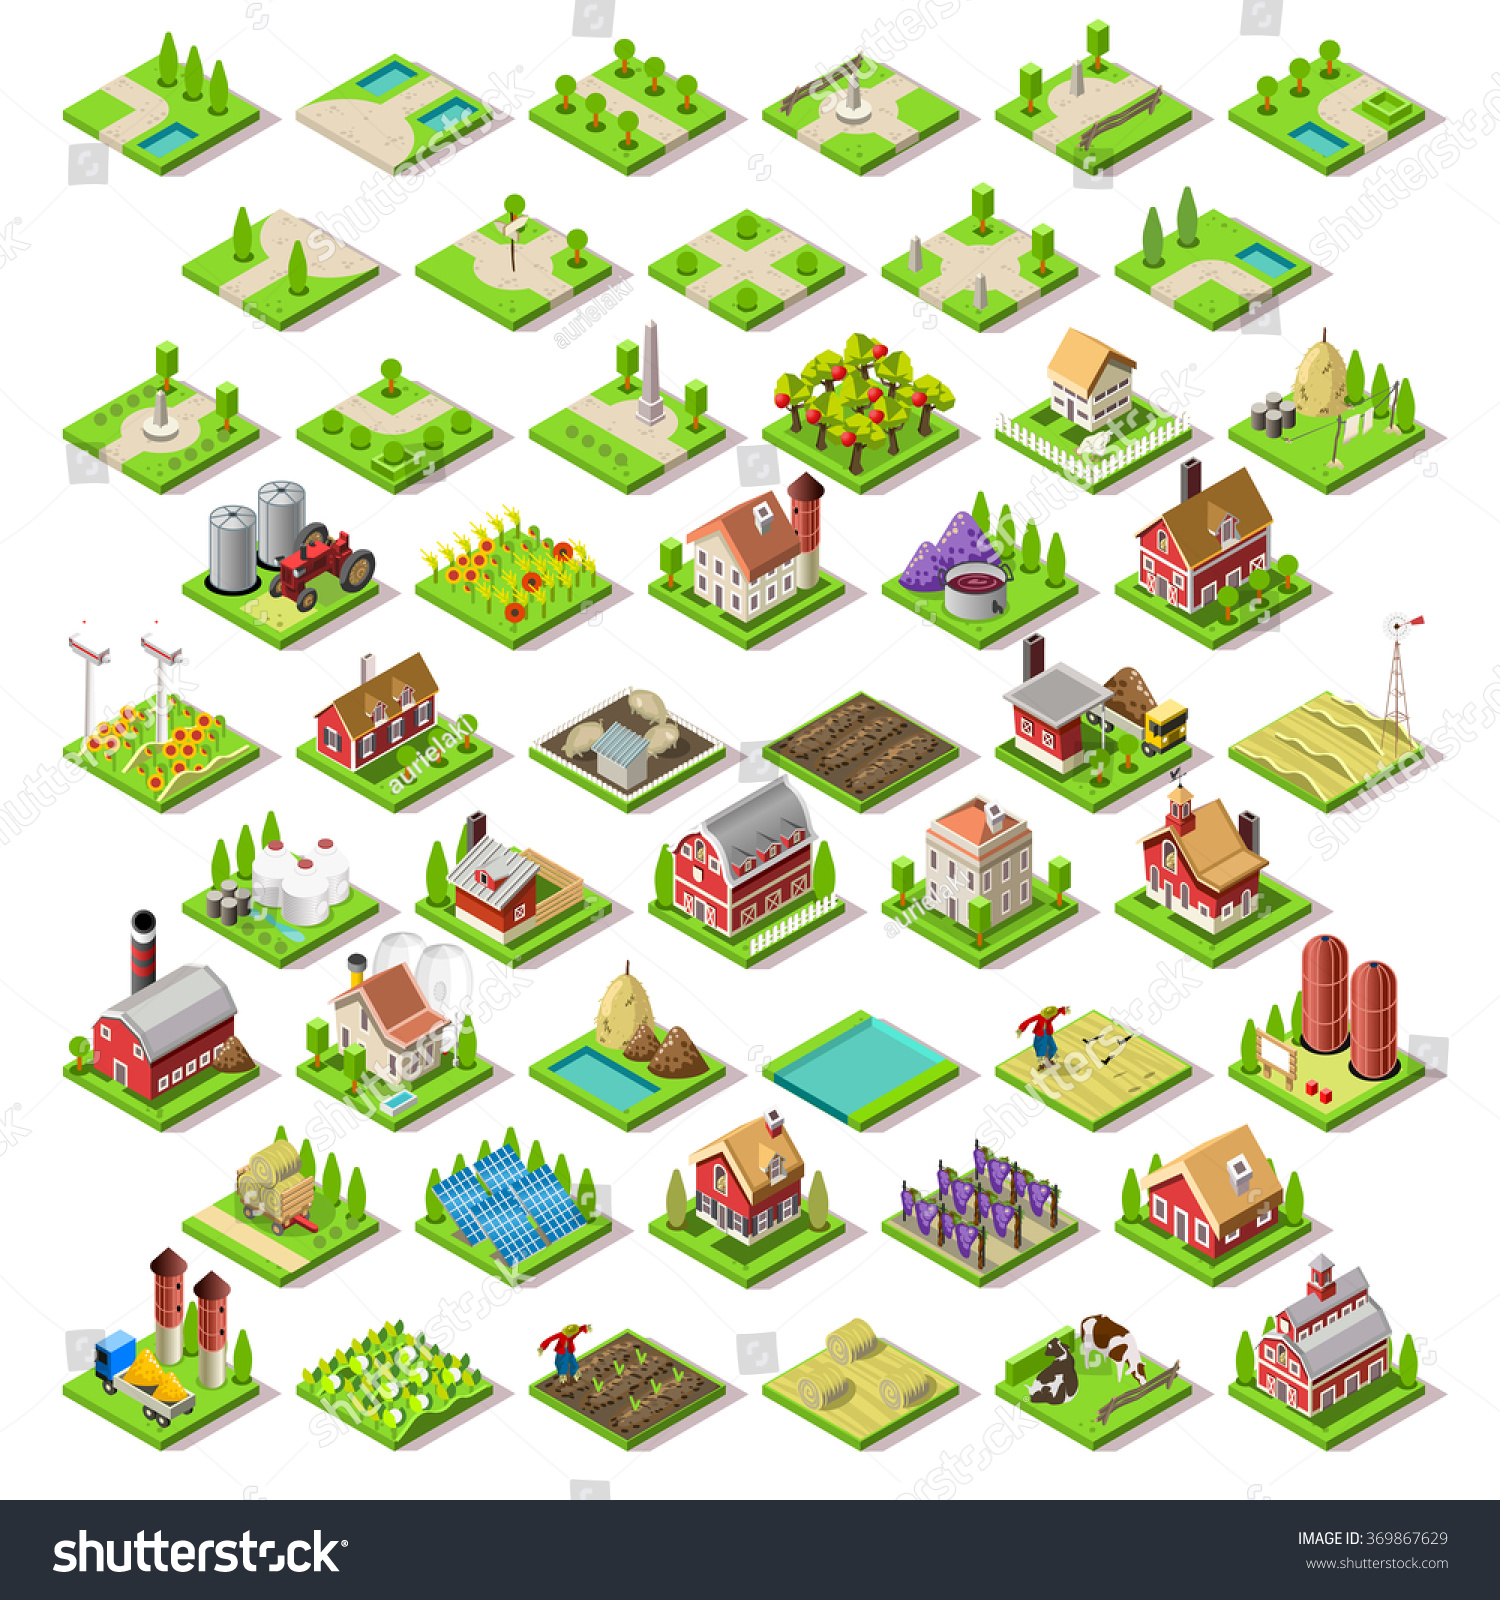 Vector Isometric Game Flat Infographic Building Stock